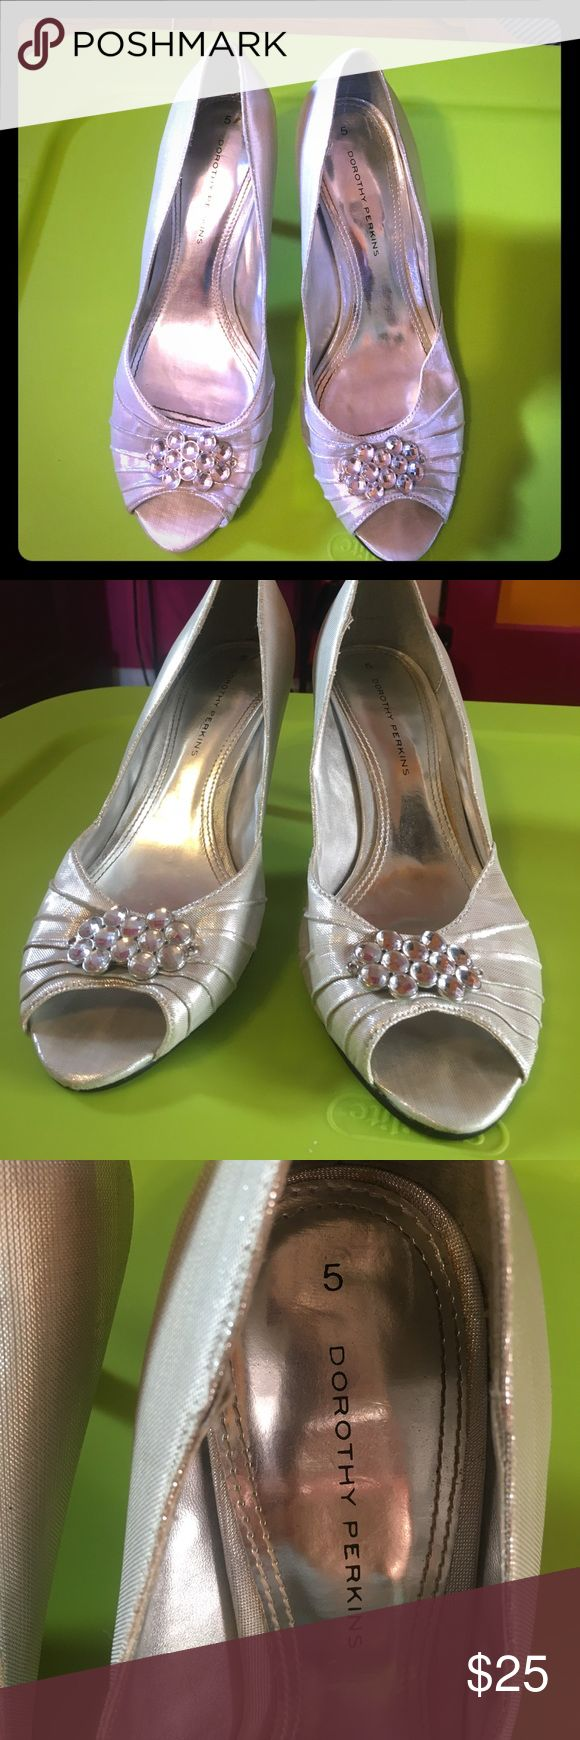 Beautiful Gemstone Silver Heels from the UK Bought these gorgeous heels from Harrod's in London, England. Worn once for prom. Size is 8 US and 5 UK. Great condition and looks like Cinderella heels! Make me an offer :) Dorothy Perkins Shoes Heels